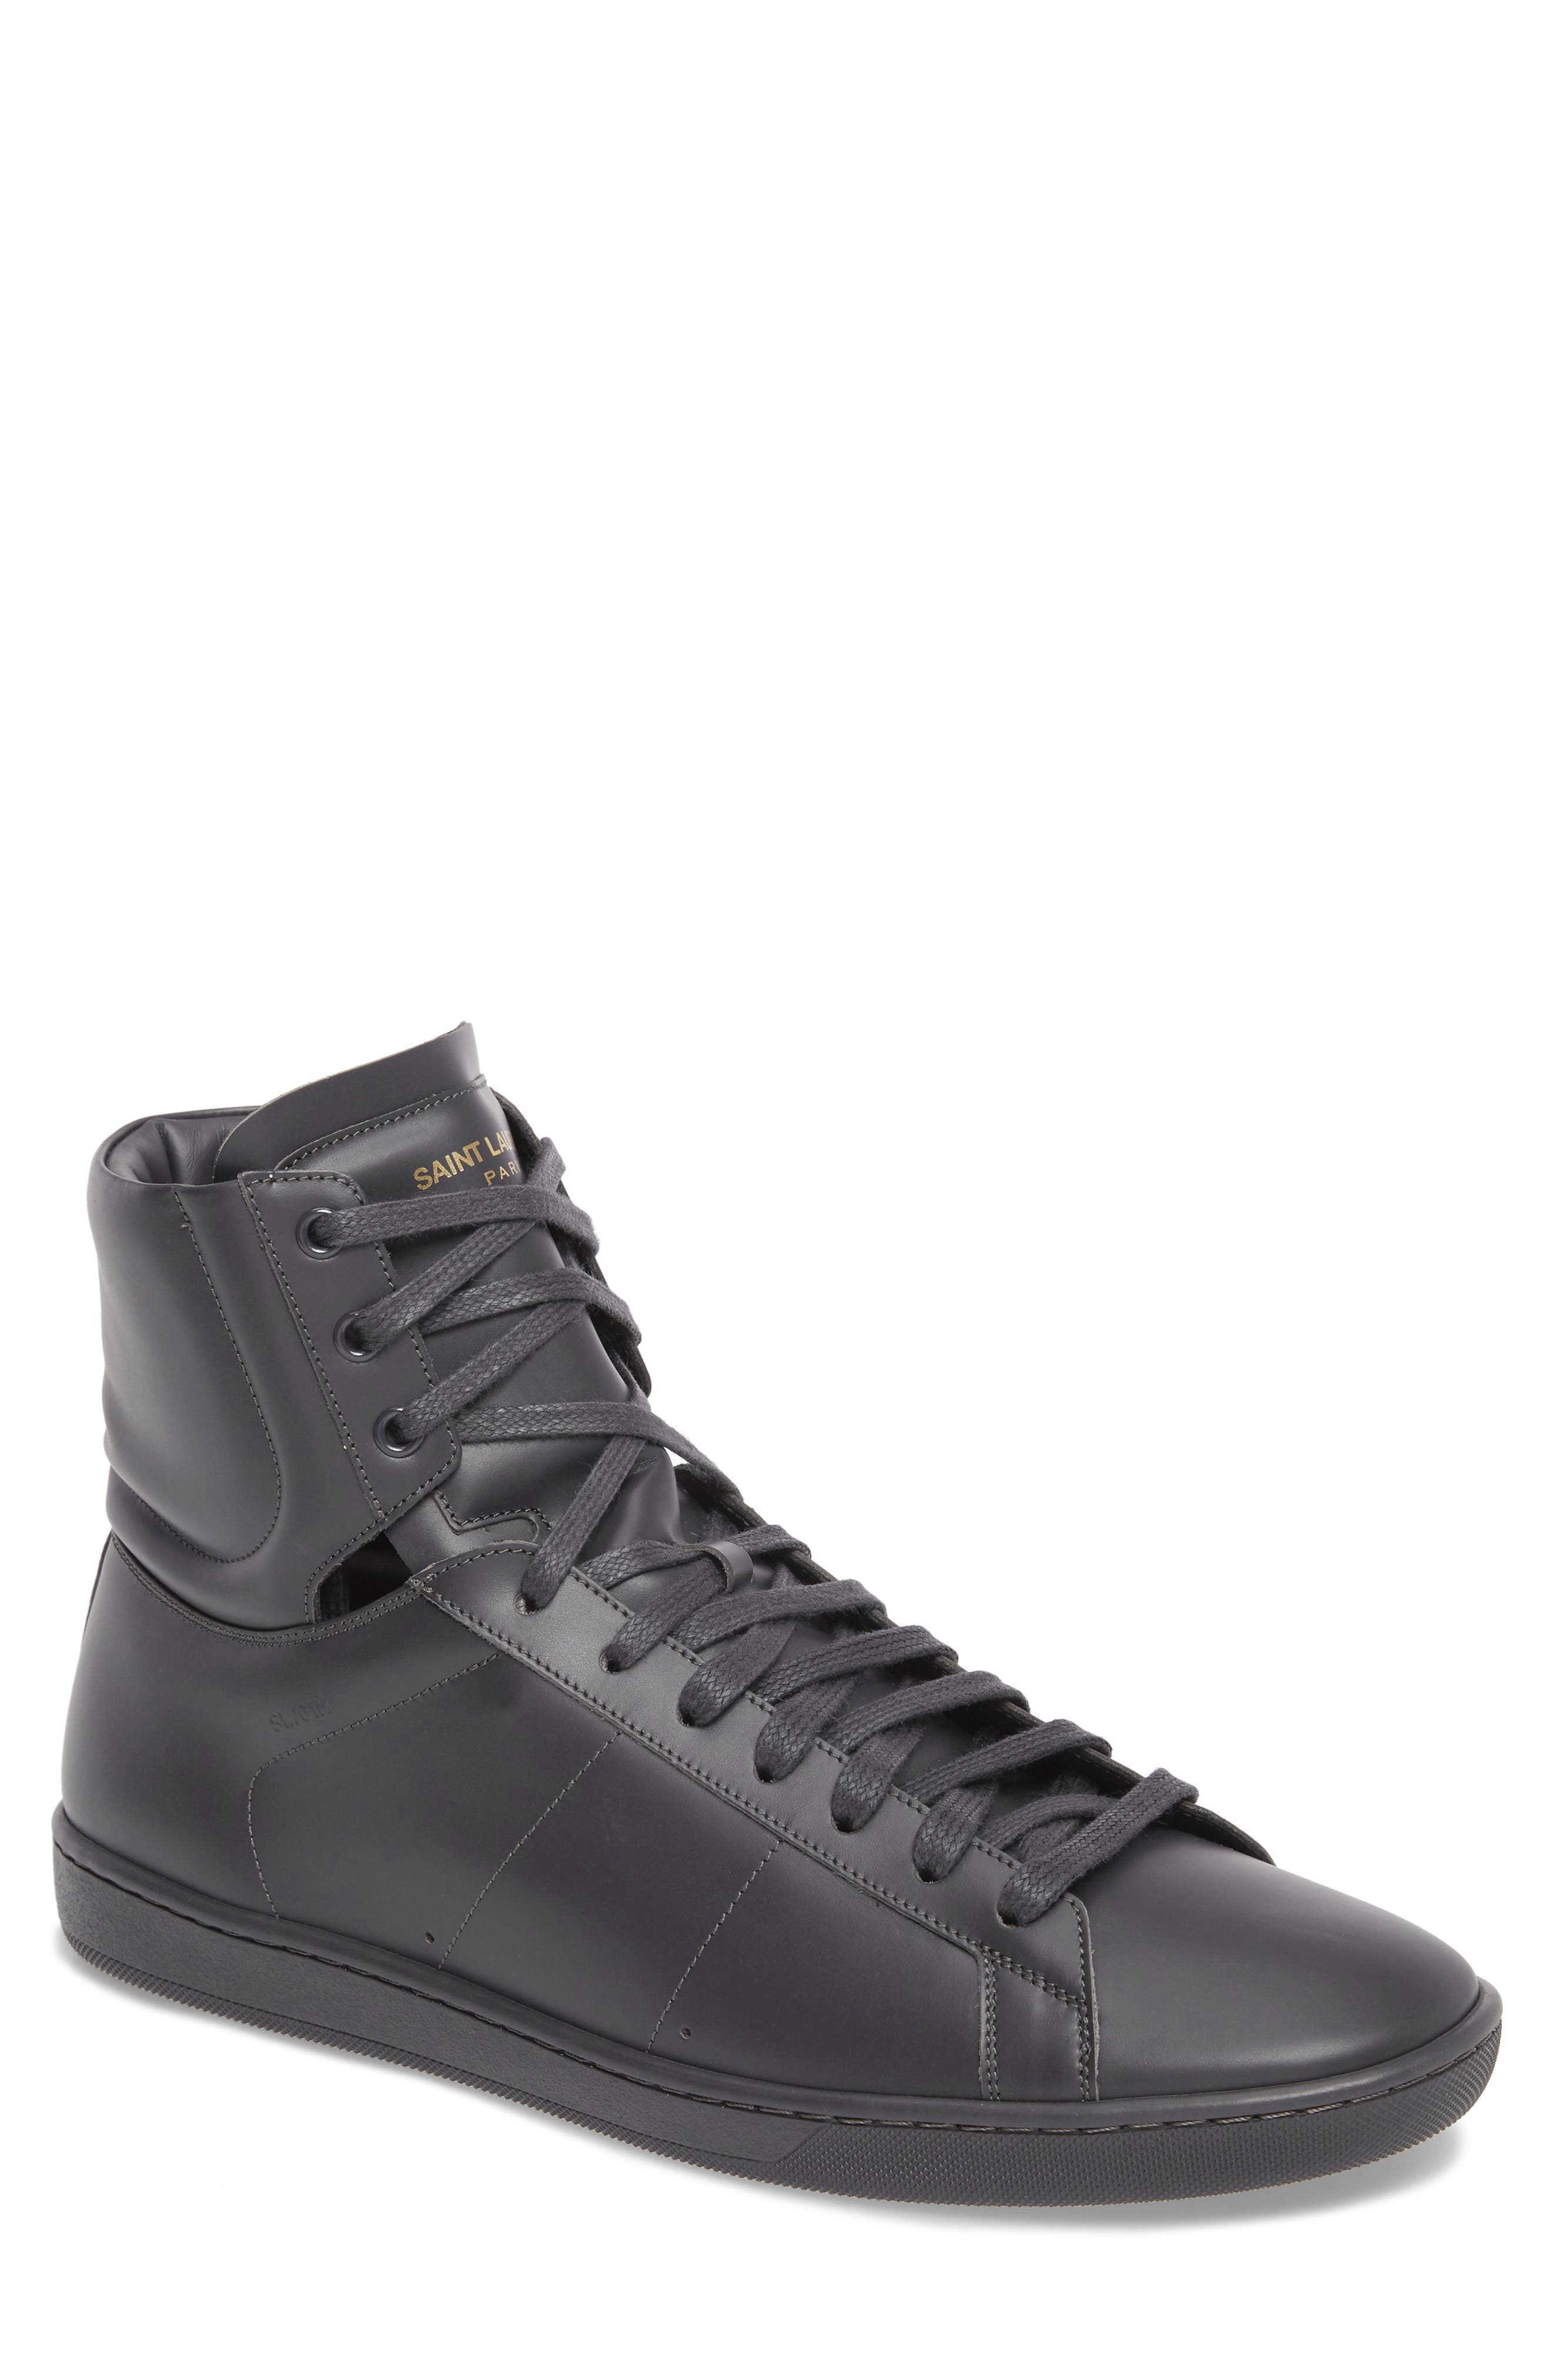 Signature Court Classic Sneaker,                             Main thumbnail 1, color,                             Grey Leather